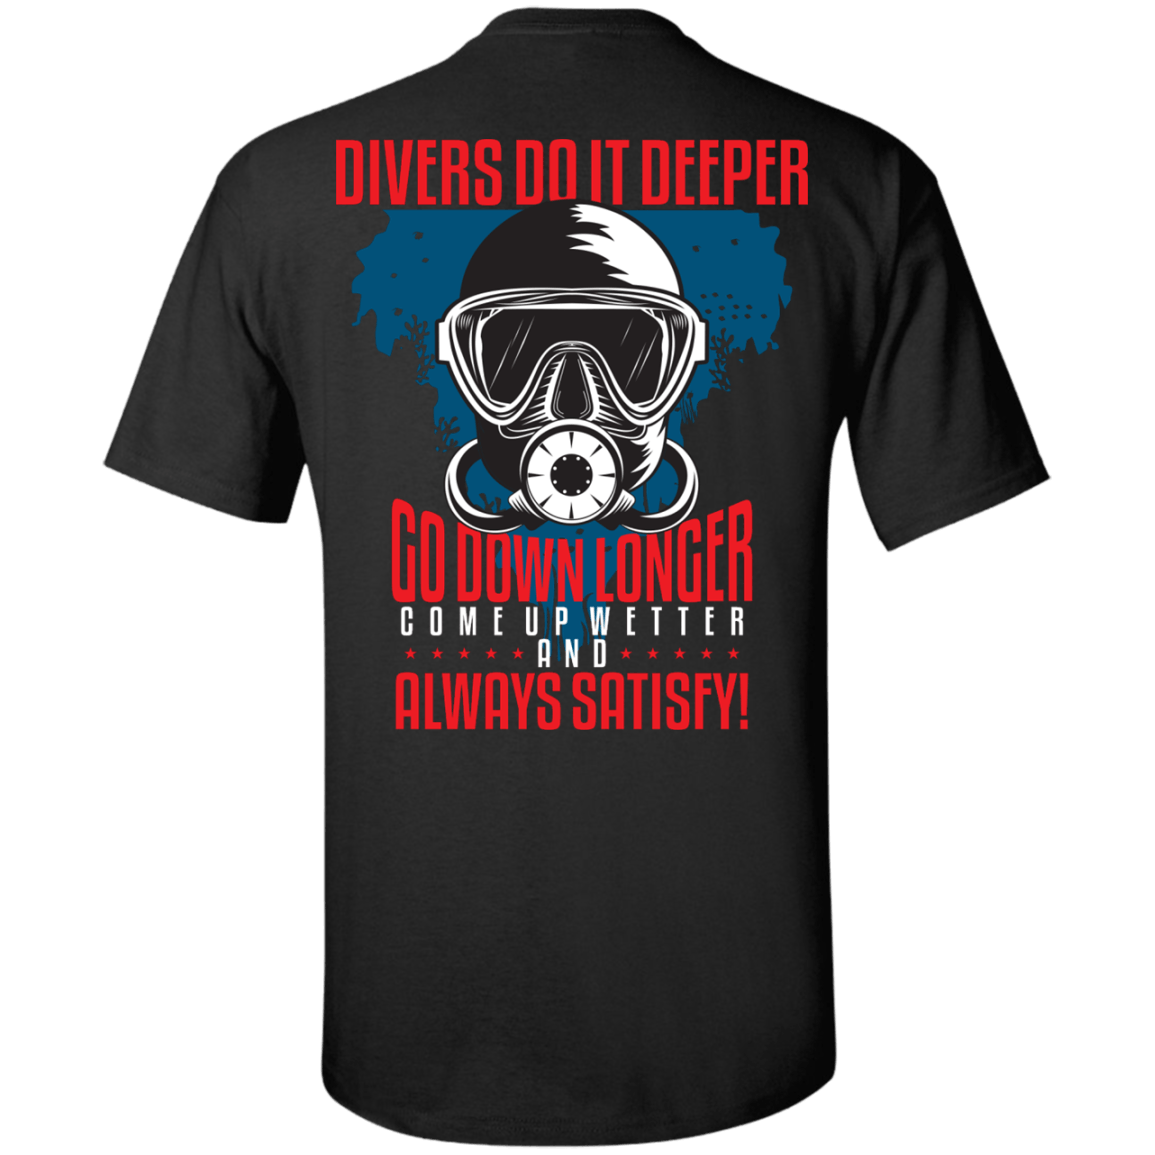 Divers Do It Deeper Tees (Warehouse)